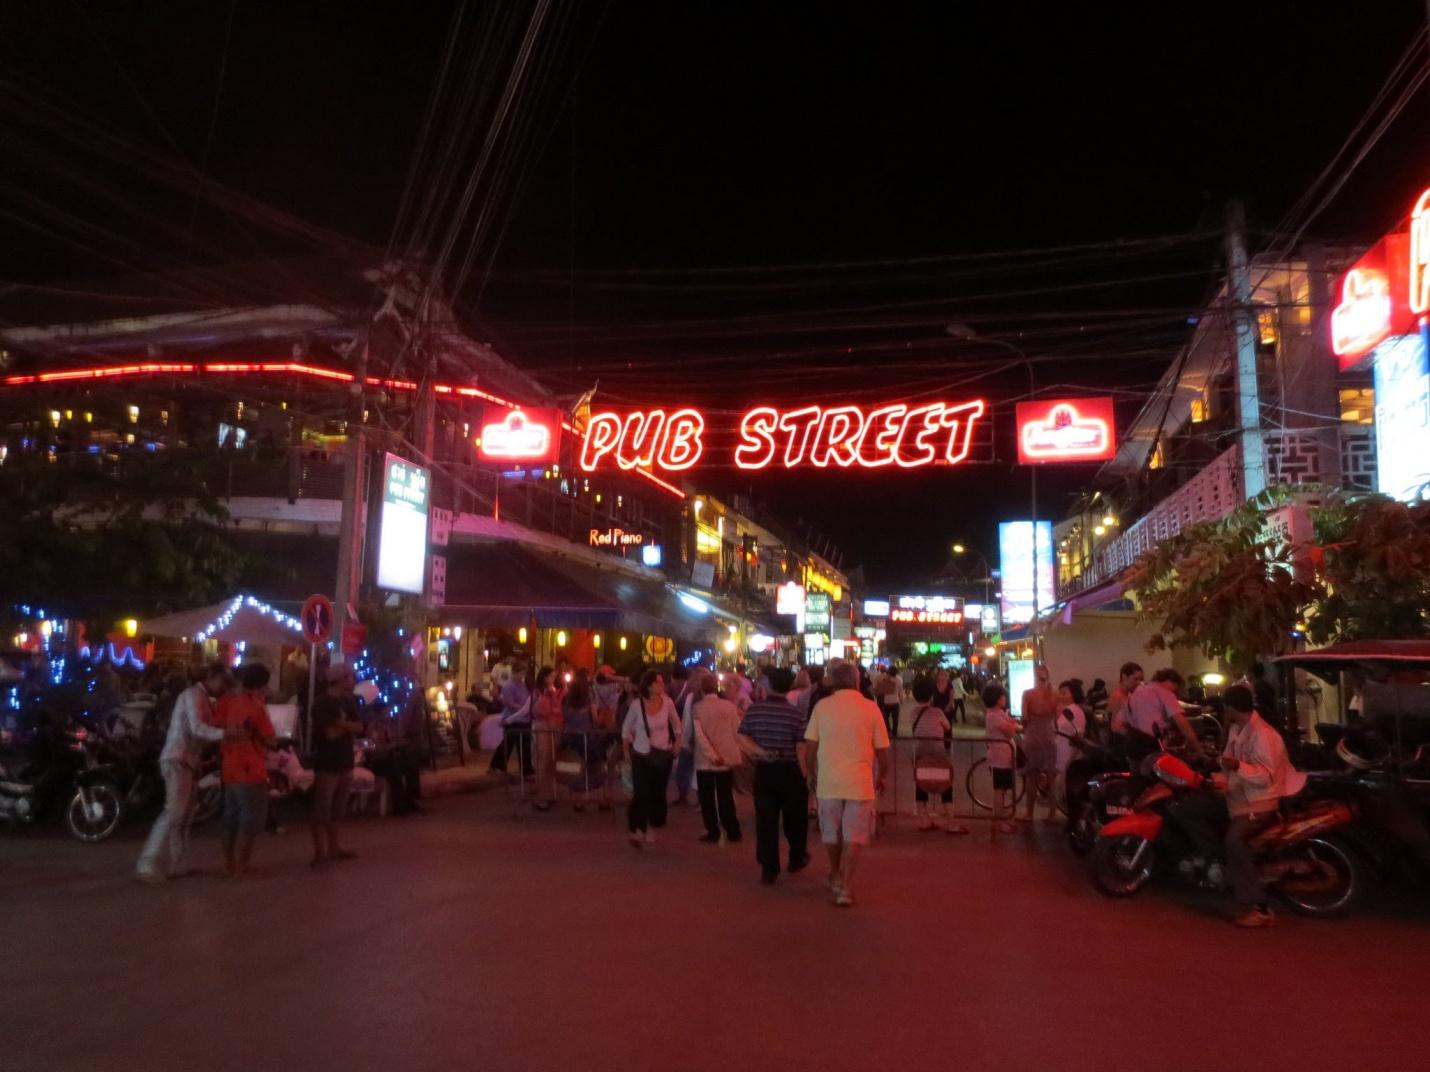 Pub Street – the site that you cannot miss when travelling to Siem Reap